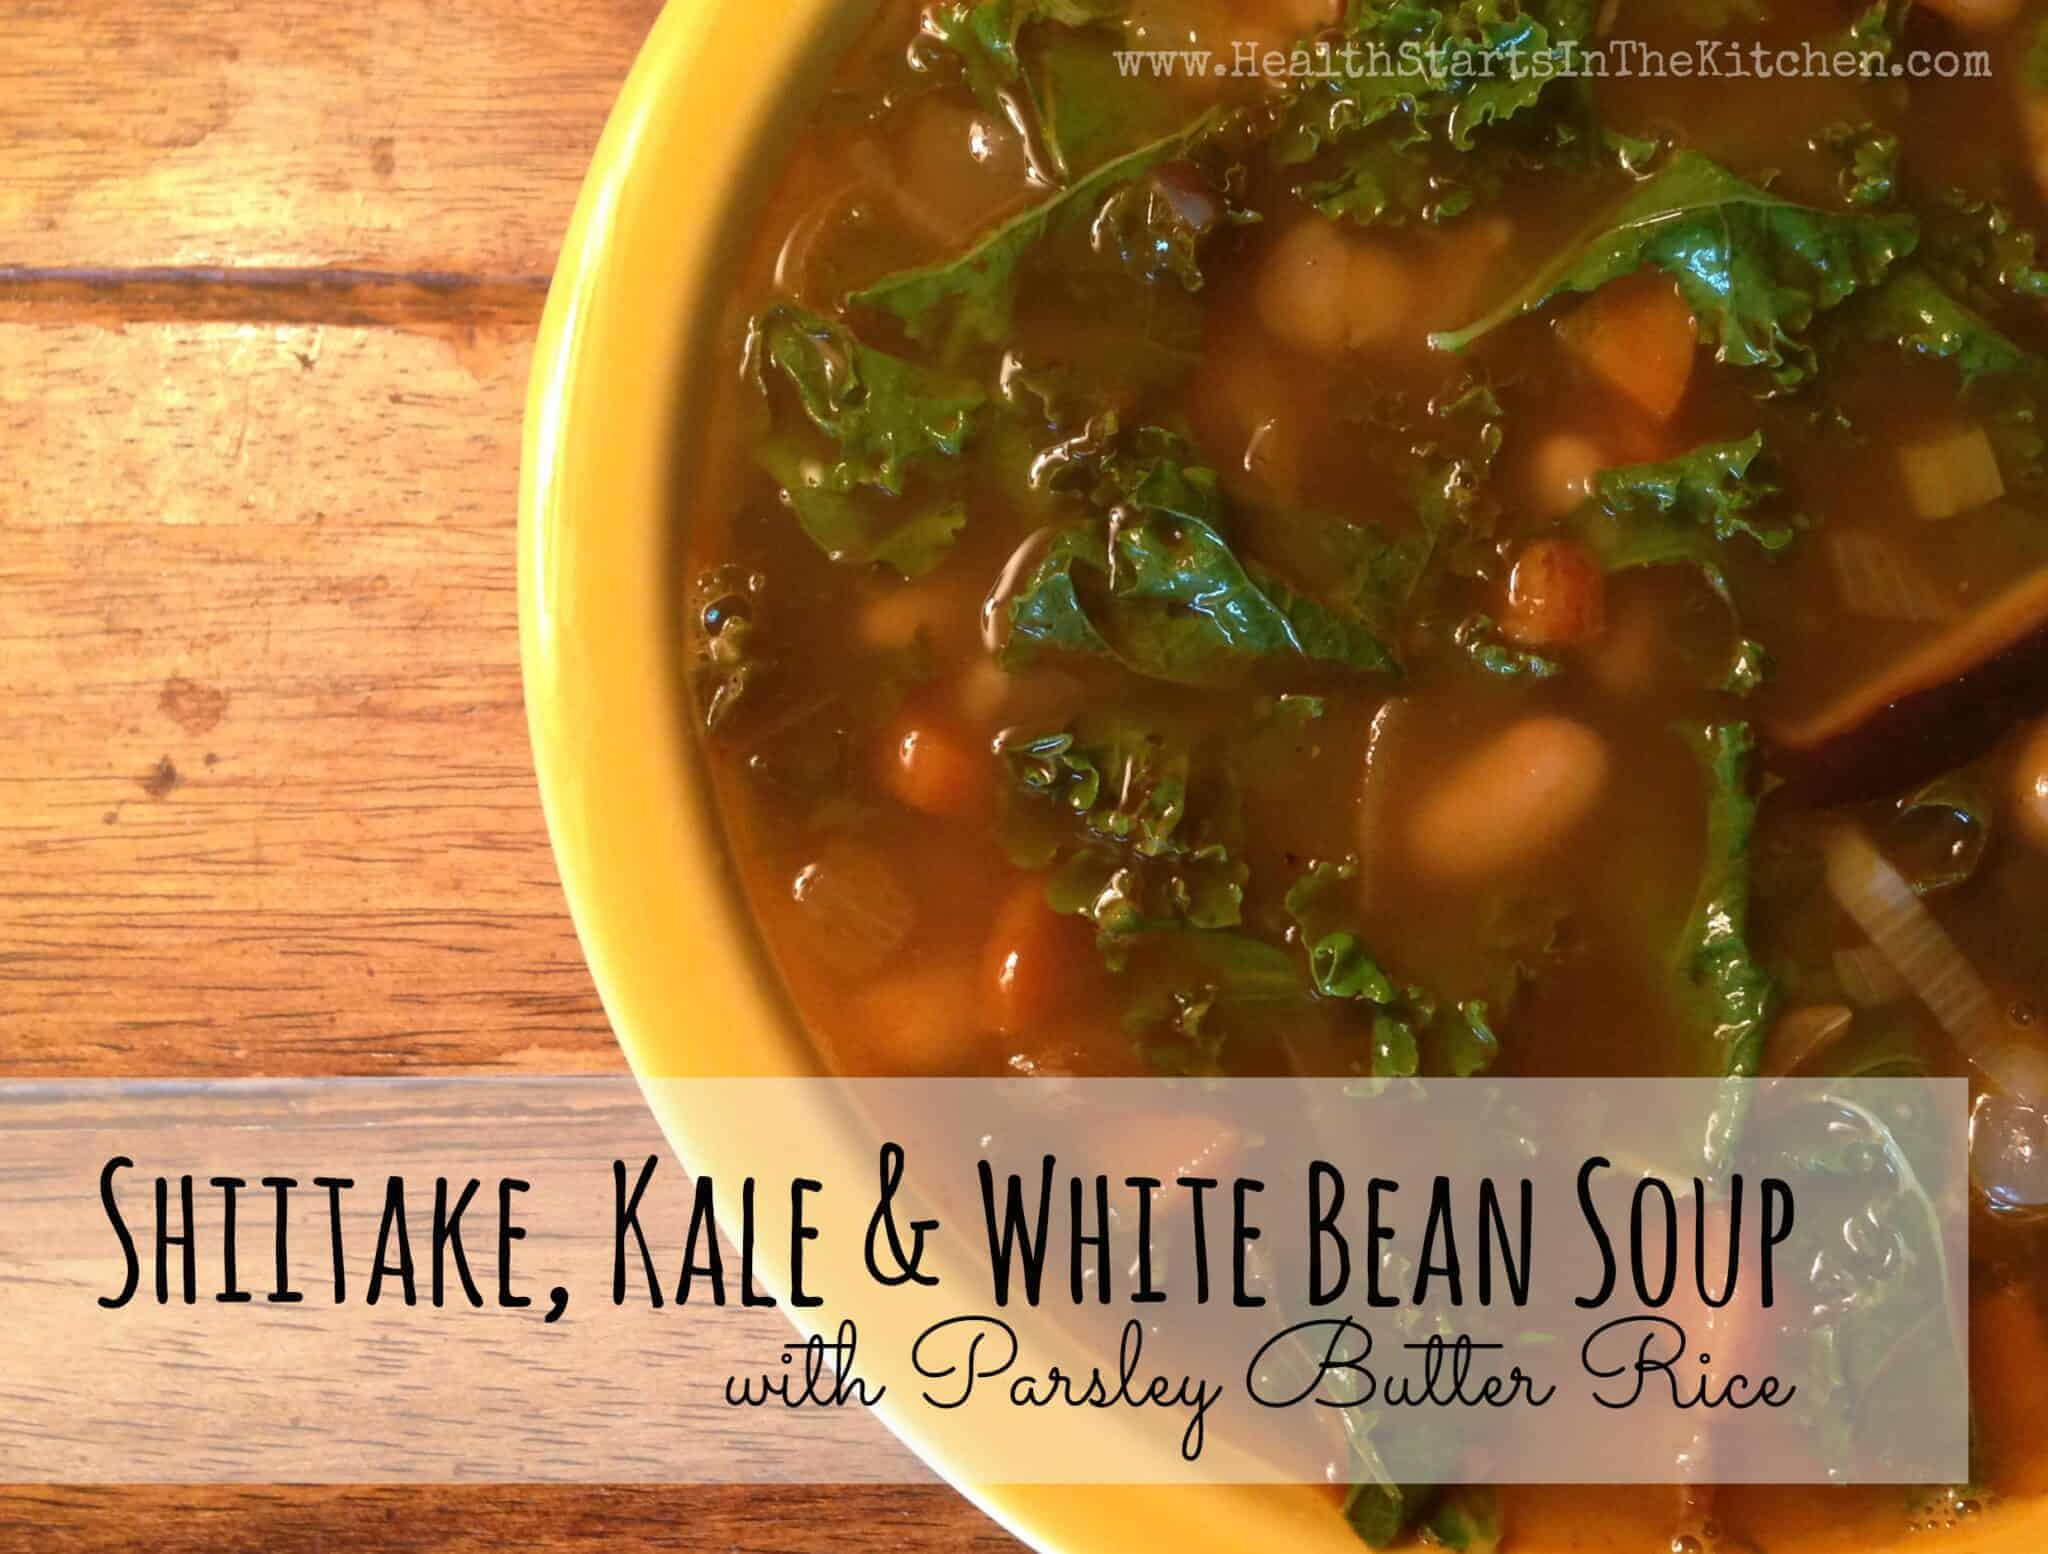 Shiitake, Kale & White Bean Soup with Parsley-Butter Rice